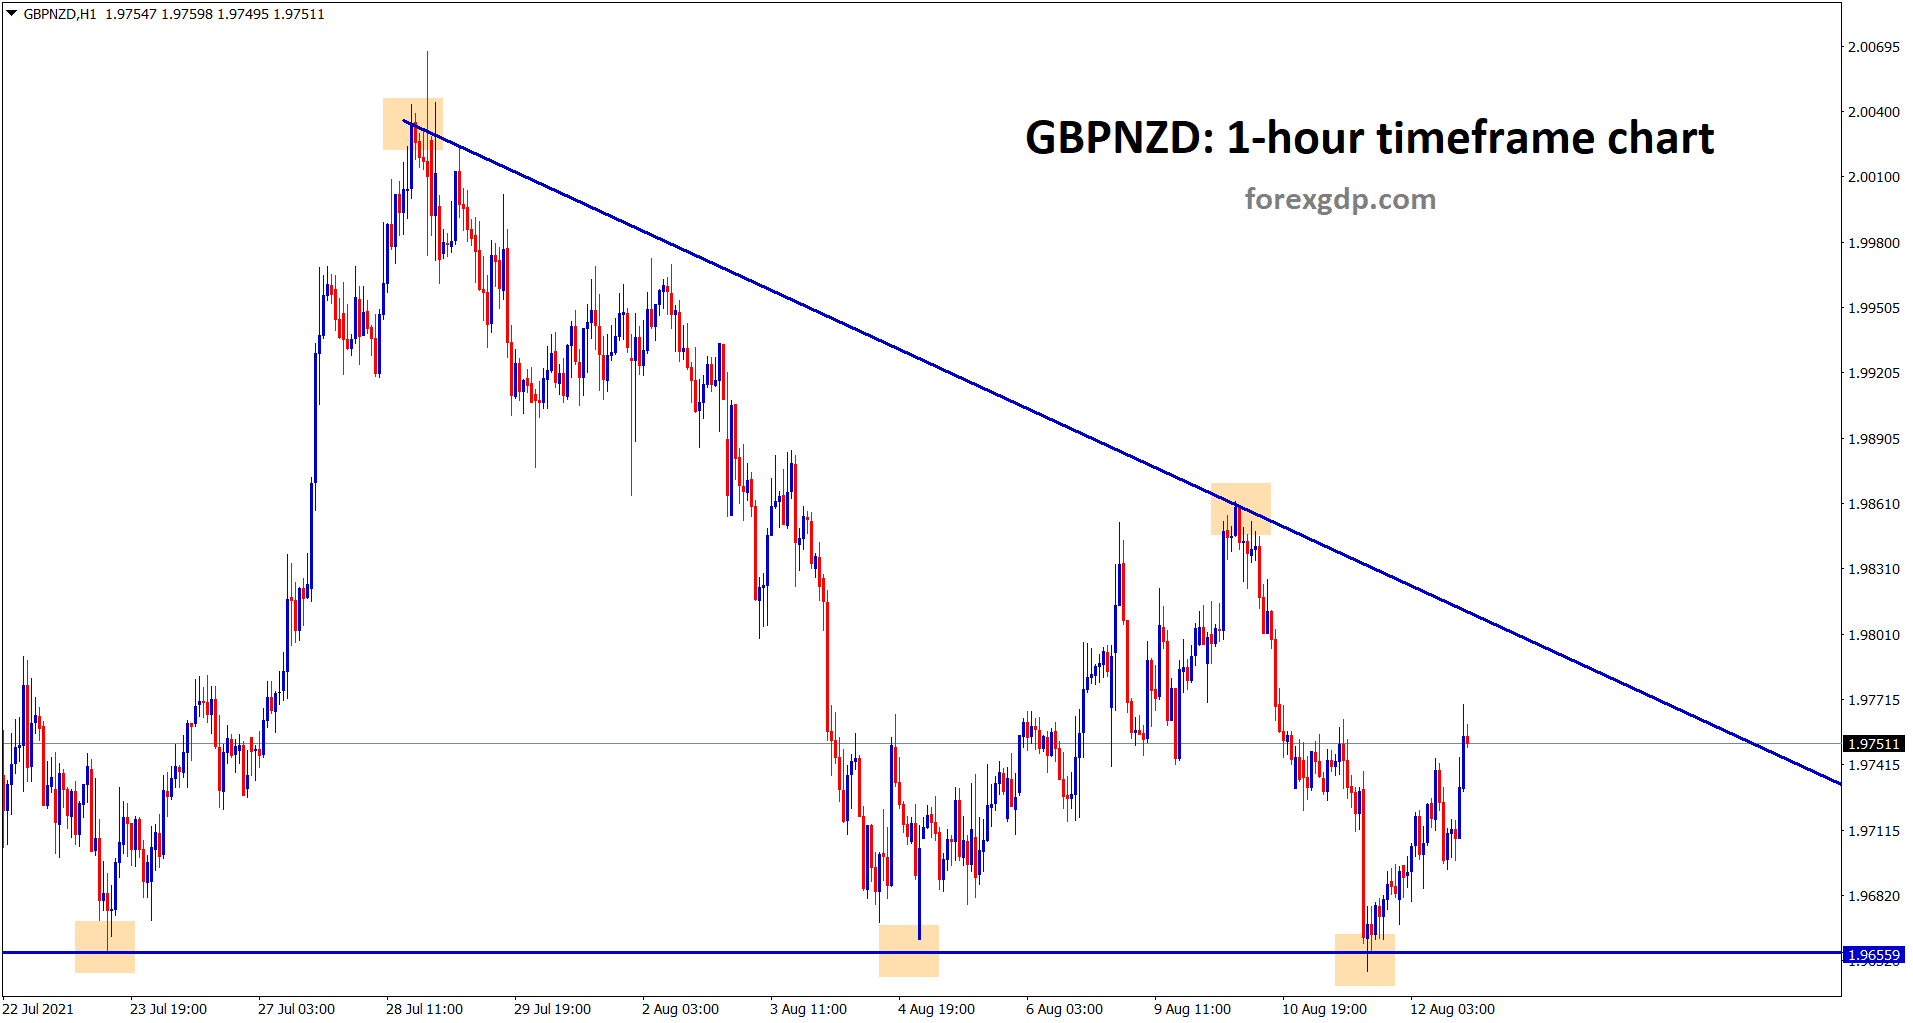 GBPNZD has formed a descending triangle pattern same as GBPAUD in the hourly chart